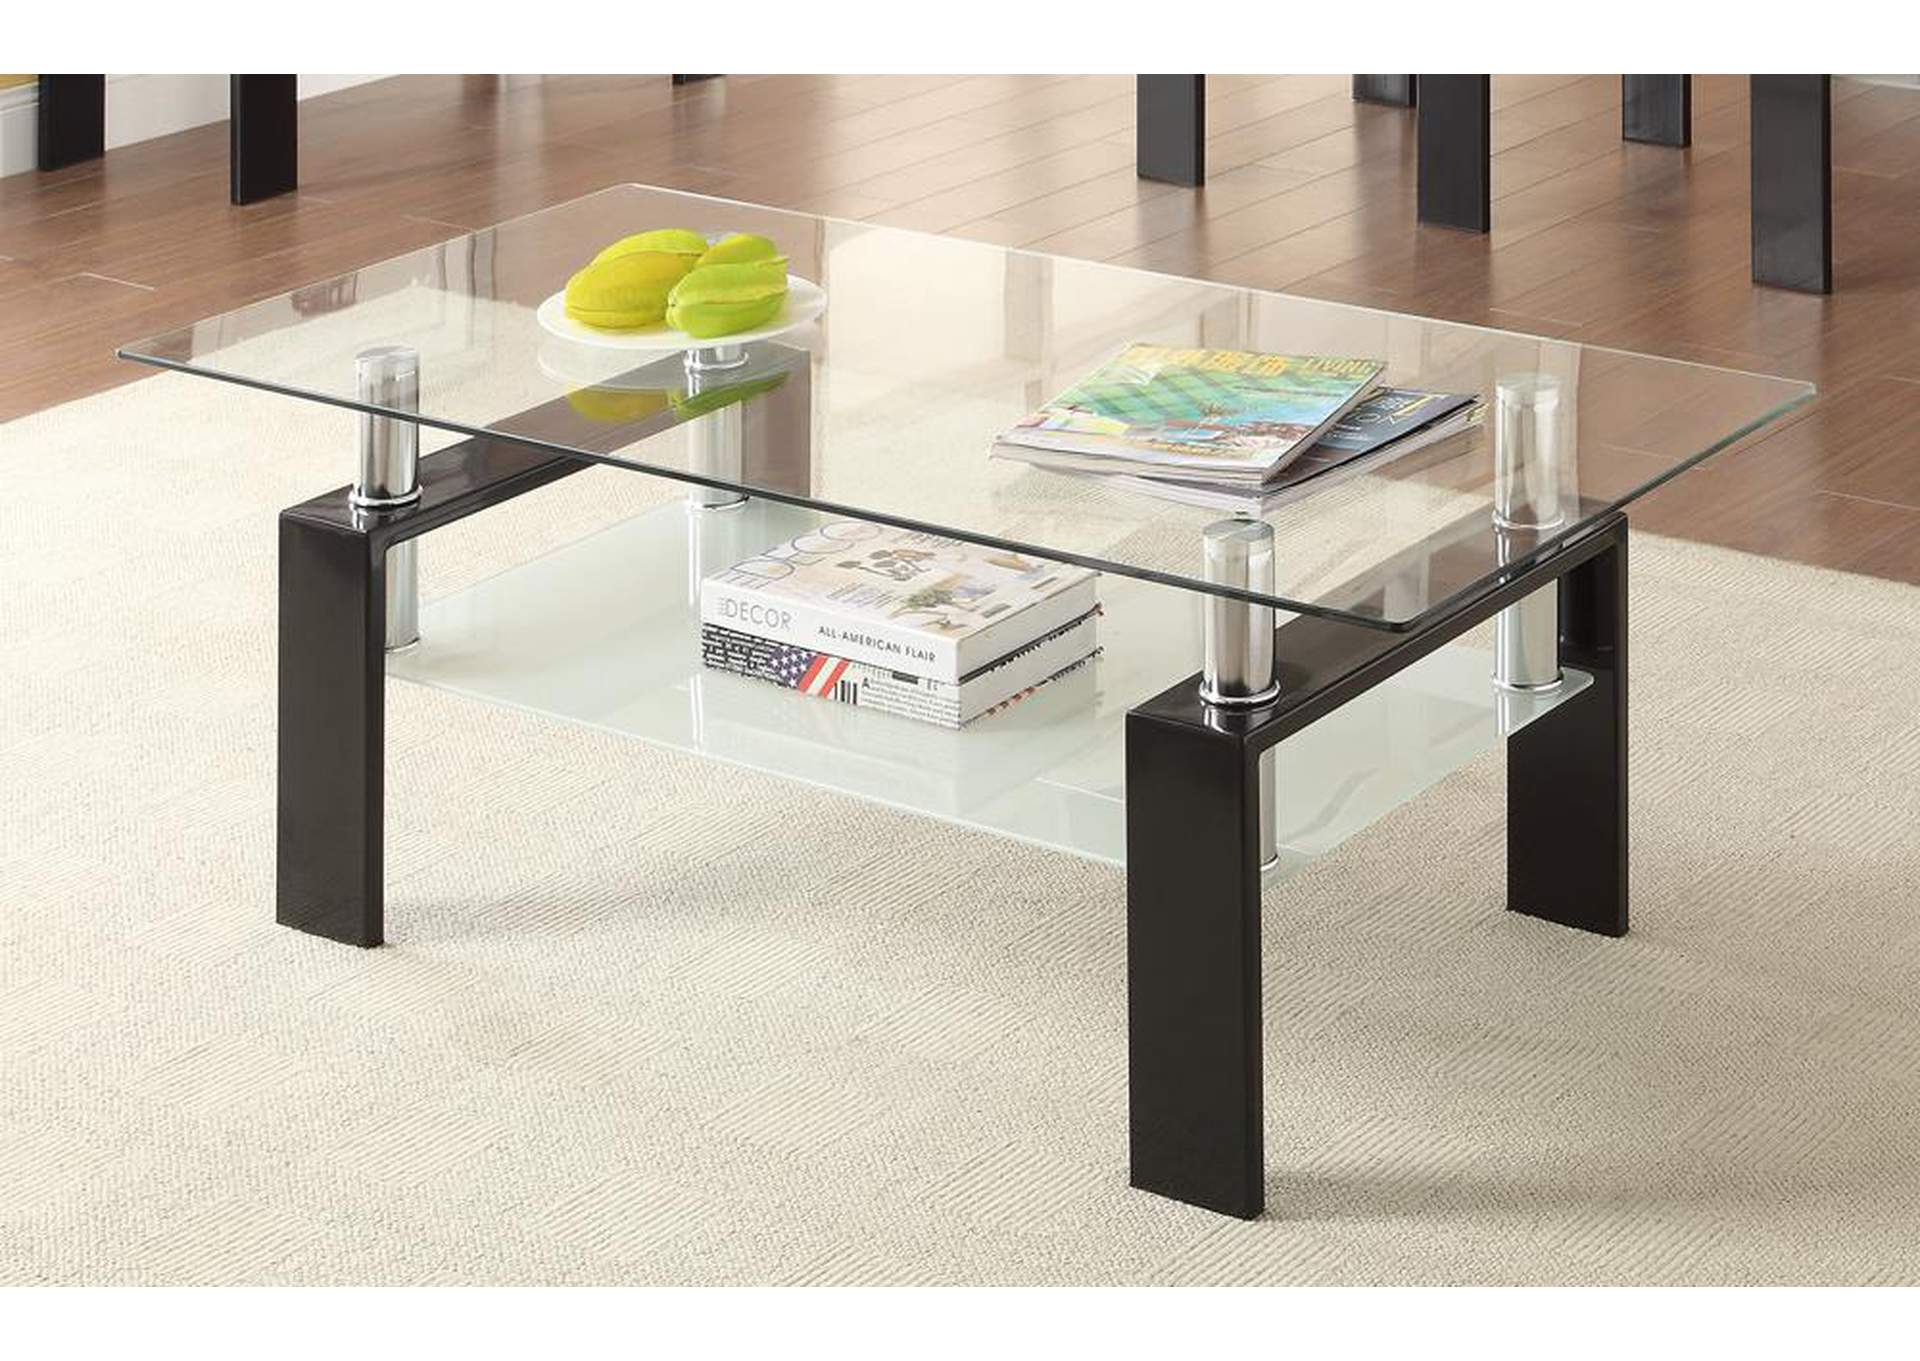 Robinson Furniture Detroit Black Coffee Table - Detroit coffee table